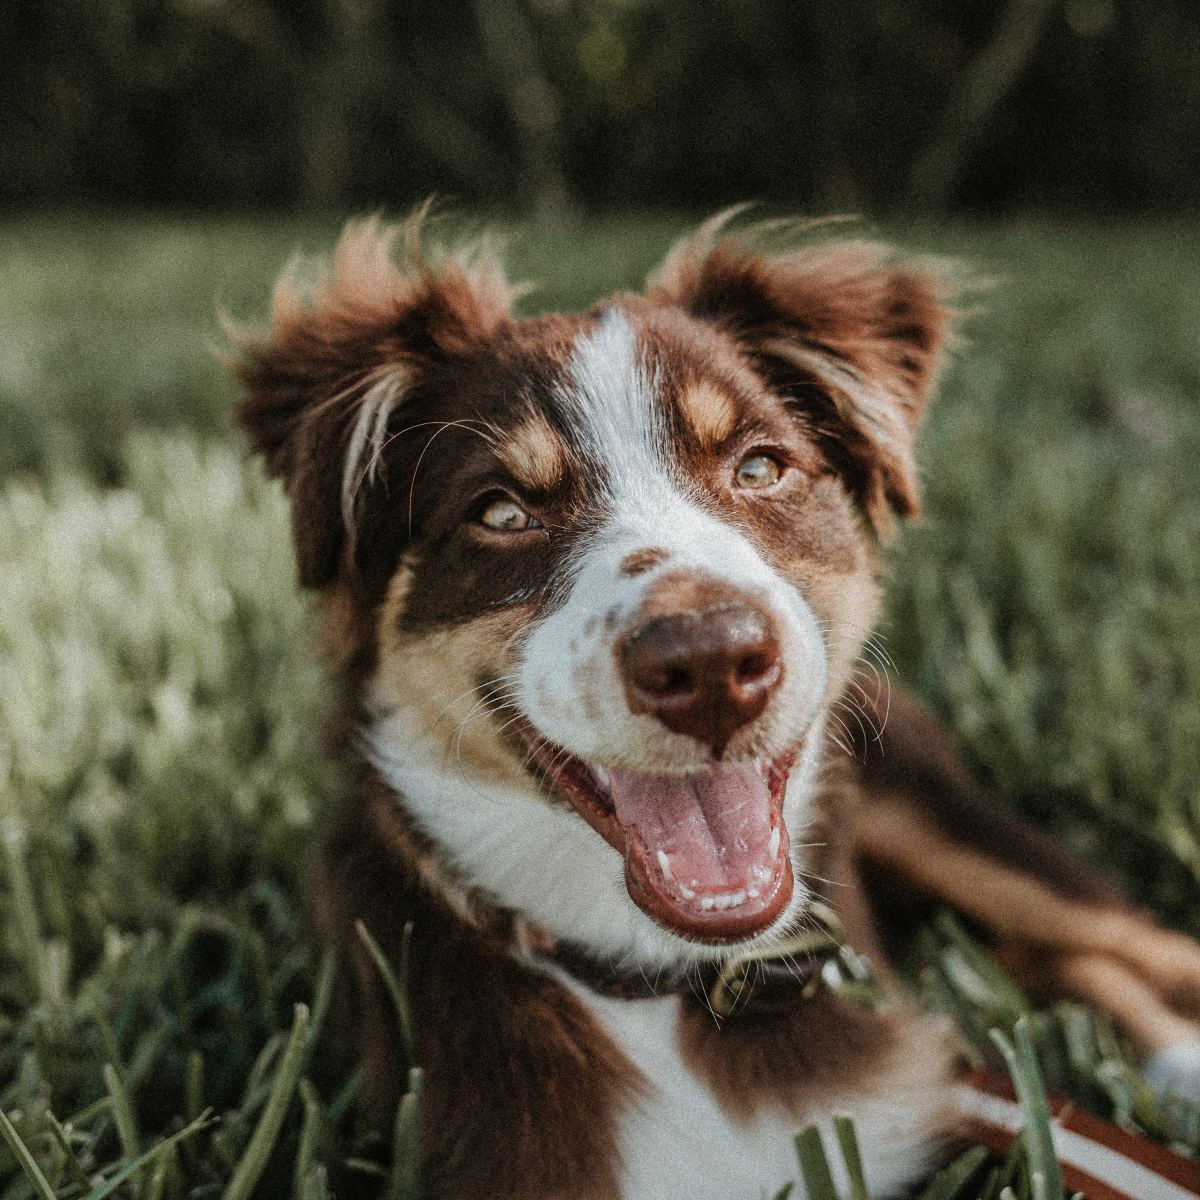 By watching your dog's mouth, you can discover some very clear messages as to what they are actually trying to tell you.